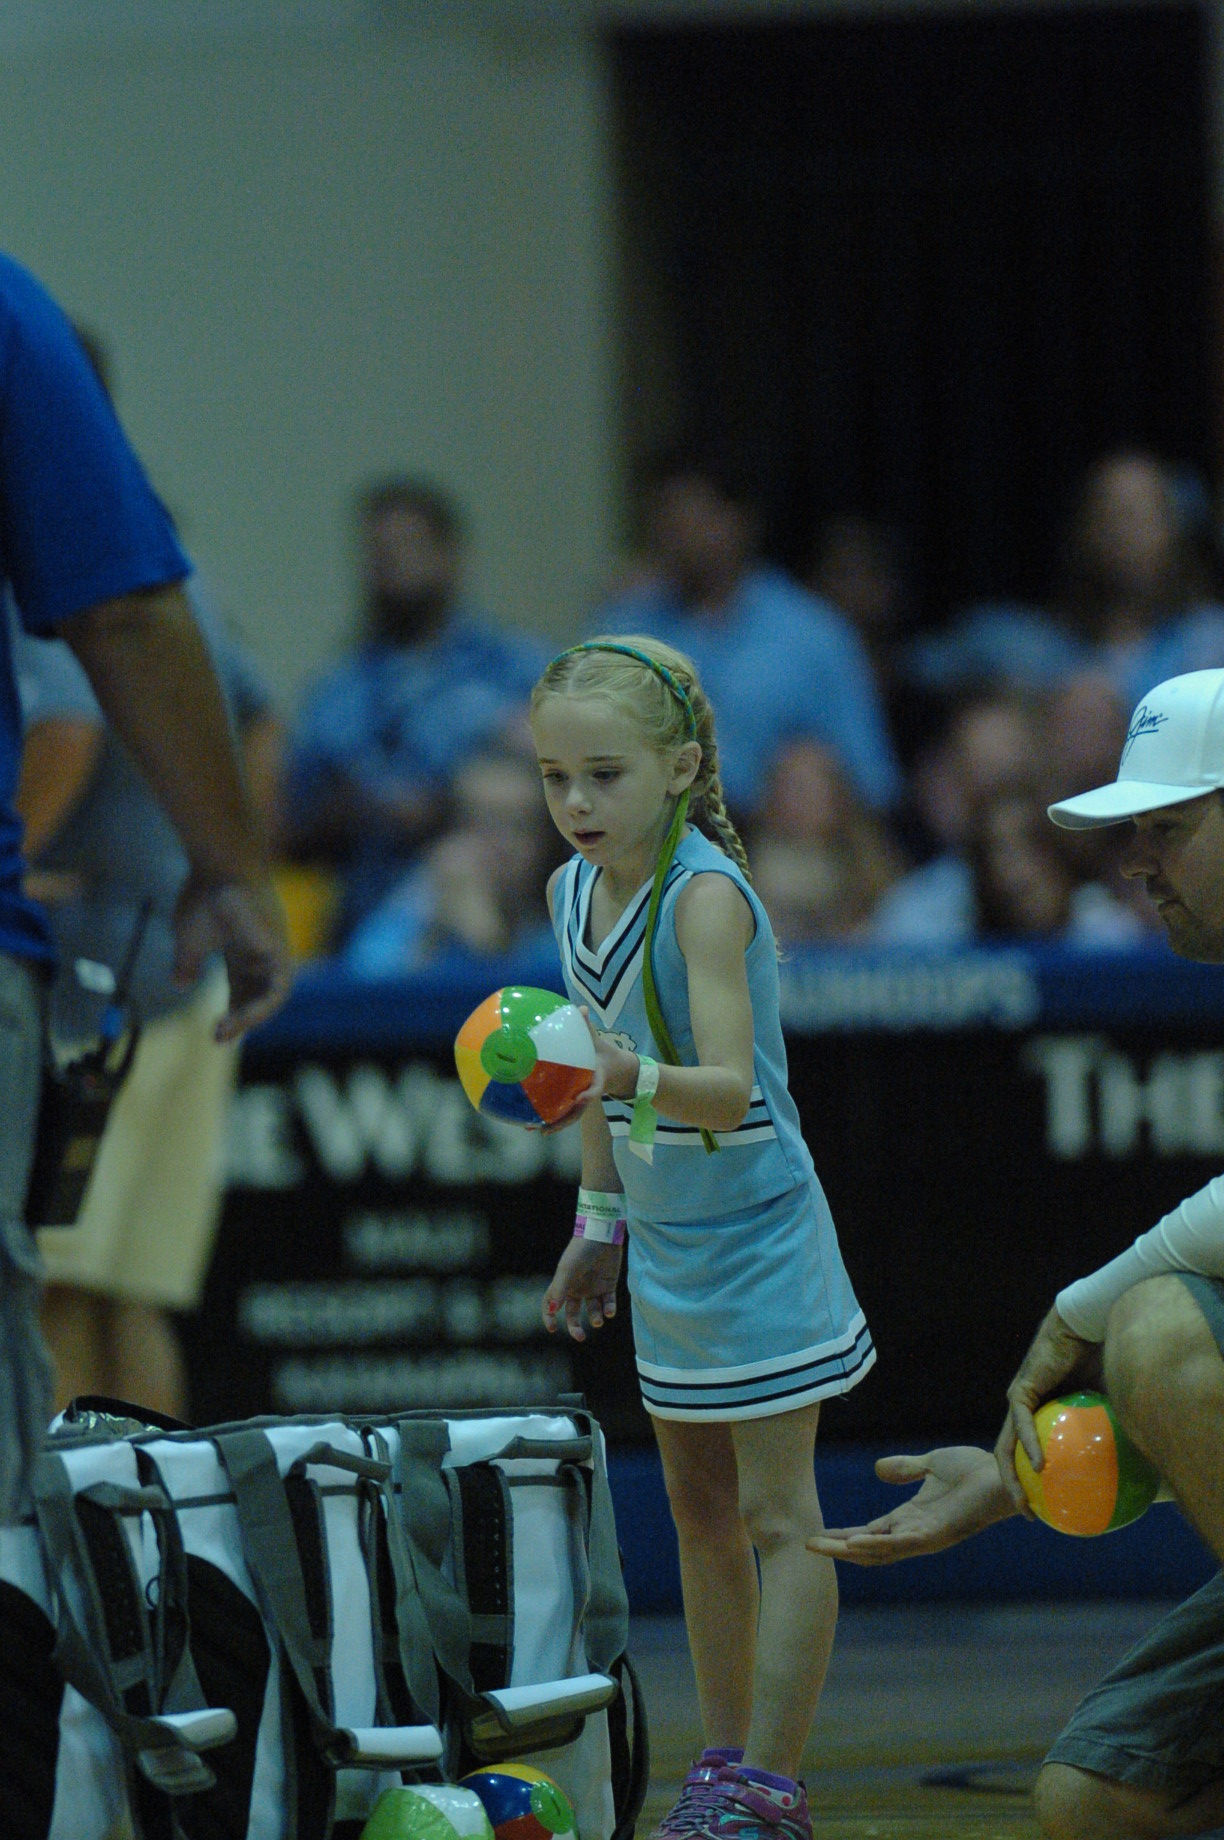 Future Lady Tar Heel. Championship game between UW vs UNC at the 2016 Maui Jim Maui Invitational. PC: Joel B. Tamayo.